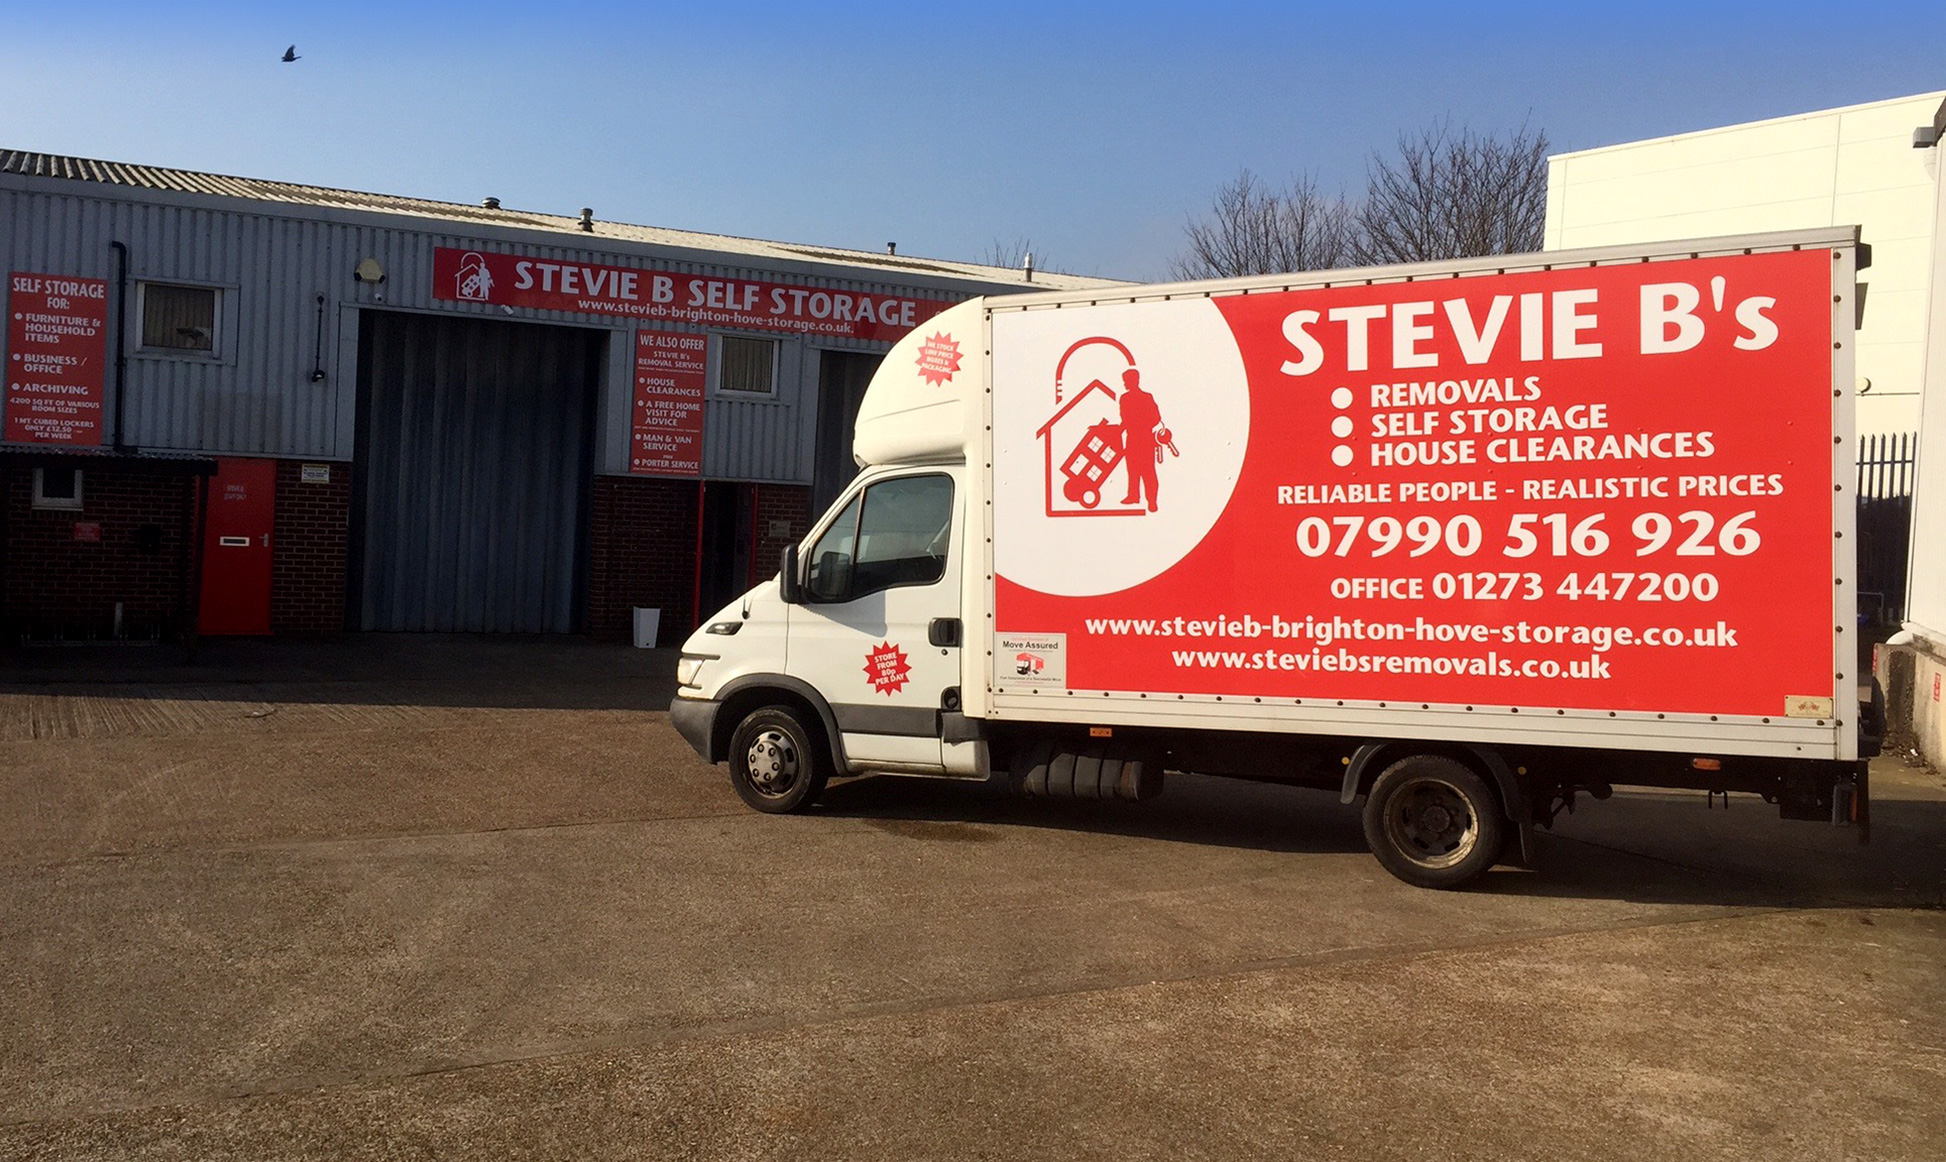 Stevie B's Removals vans at our Brighton storage centre